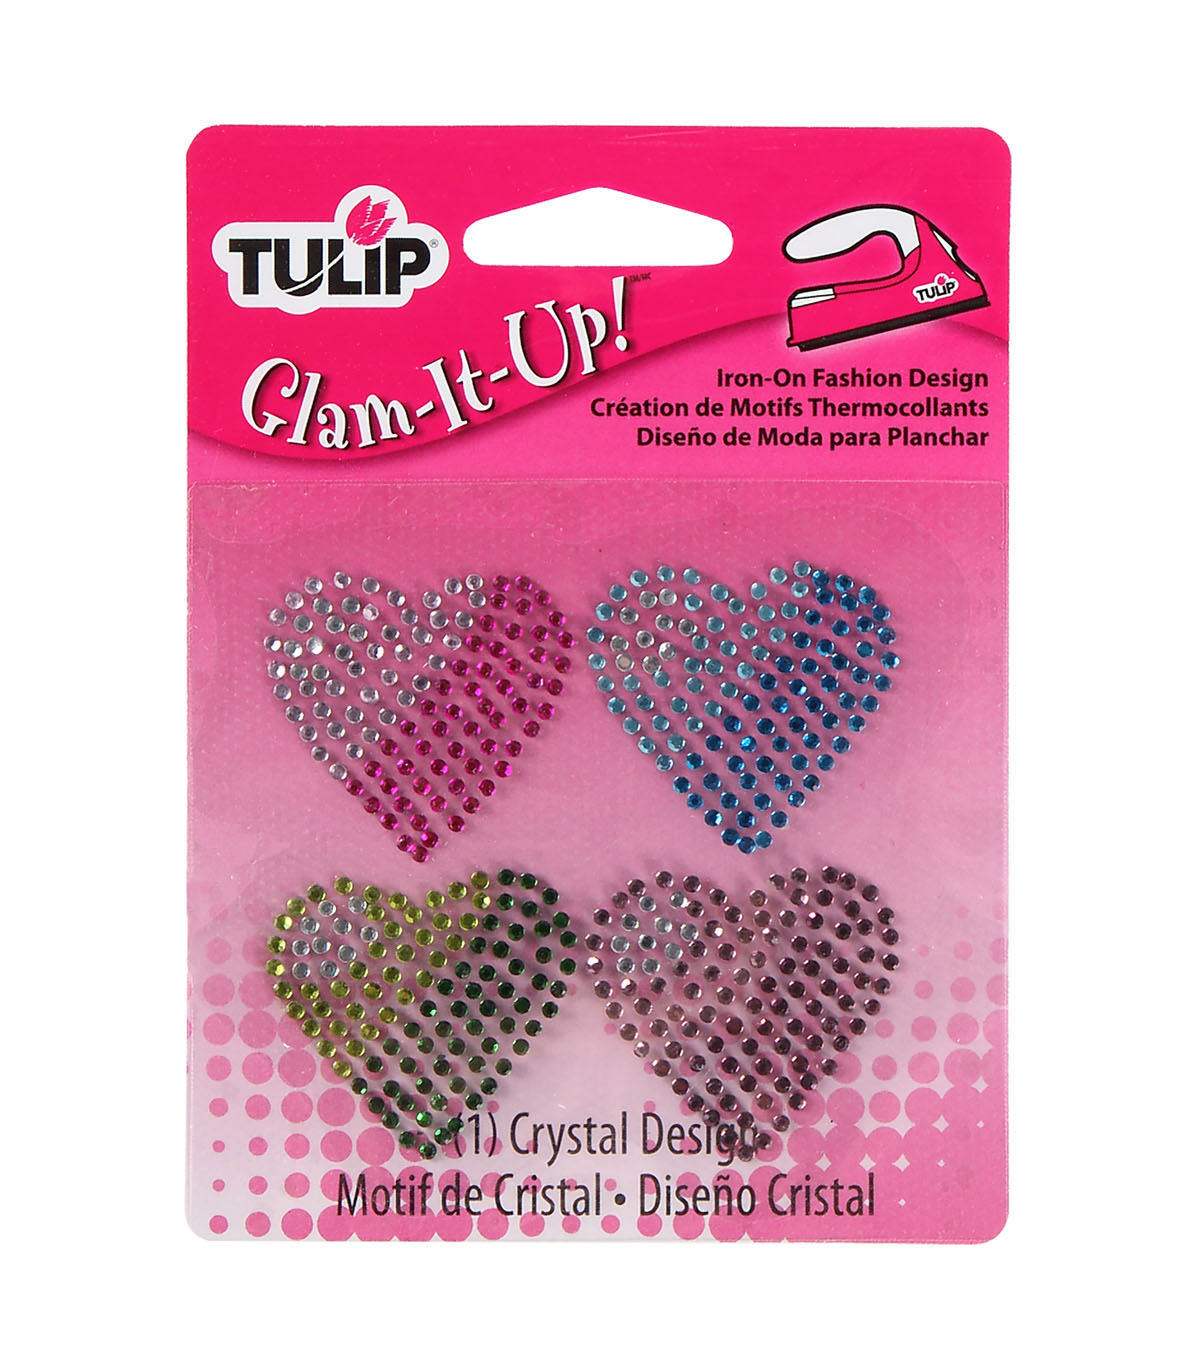 Tulip® Glam-It-Up! Iron-On Fashion Designs Hearts Pack